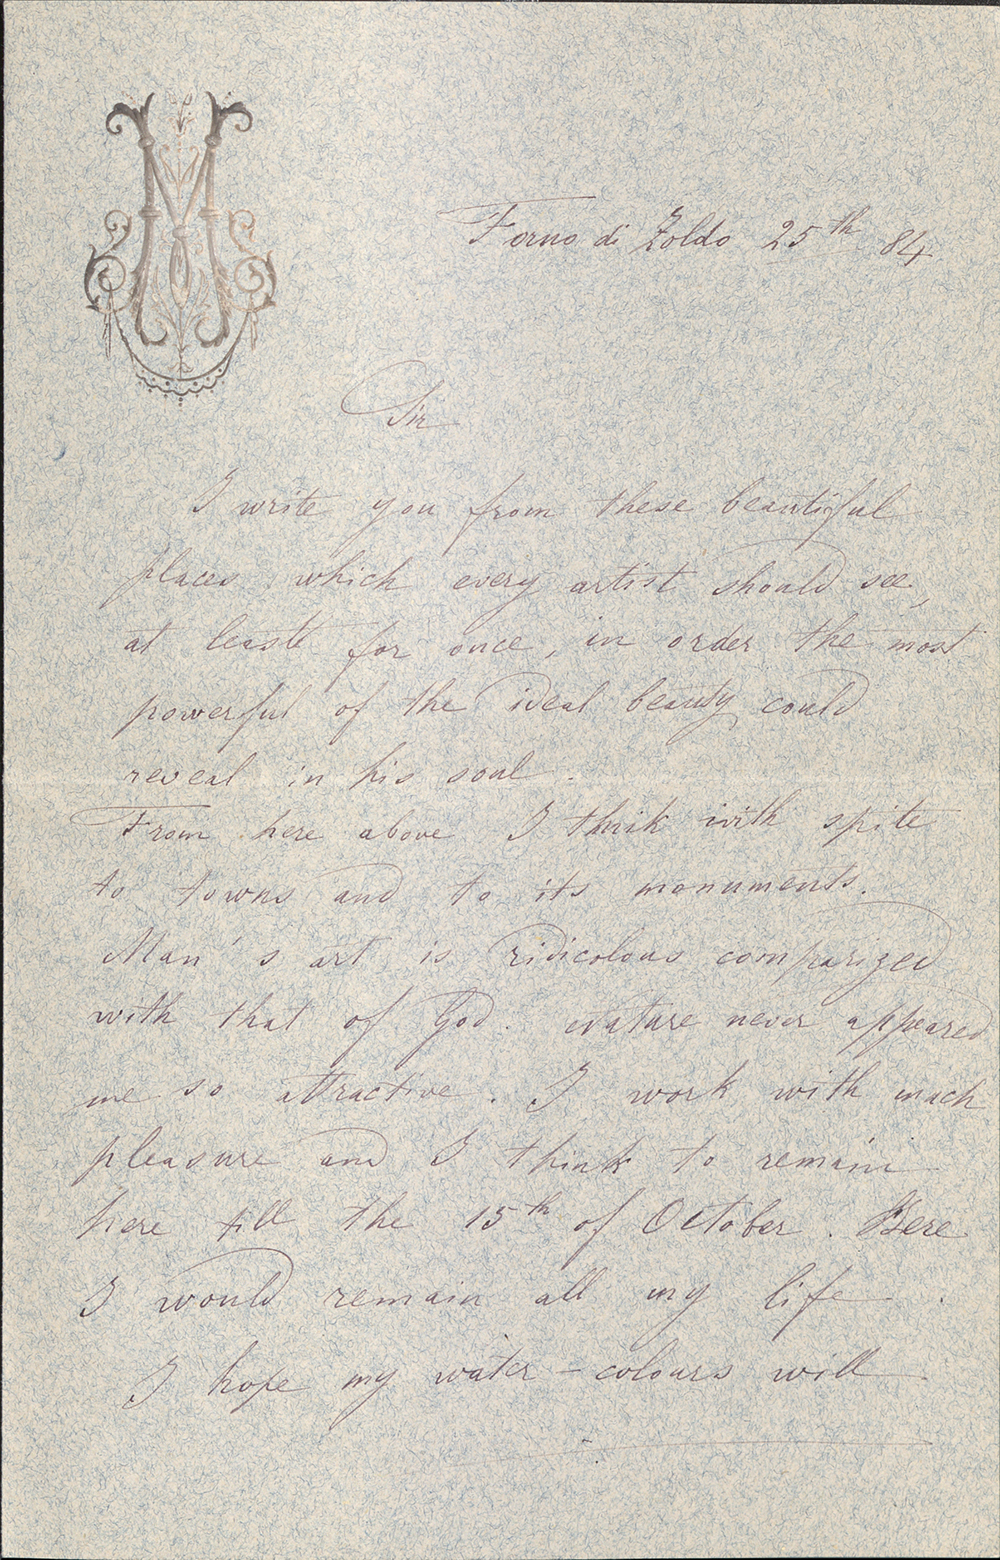 Letter To George Walter Vincent Smith From Raffaele Mainella, Forno Di Zoldo, September 25, 1884